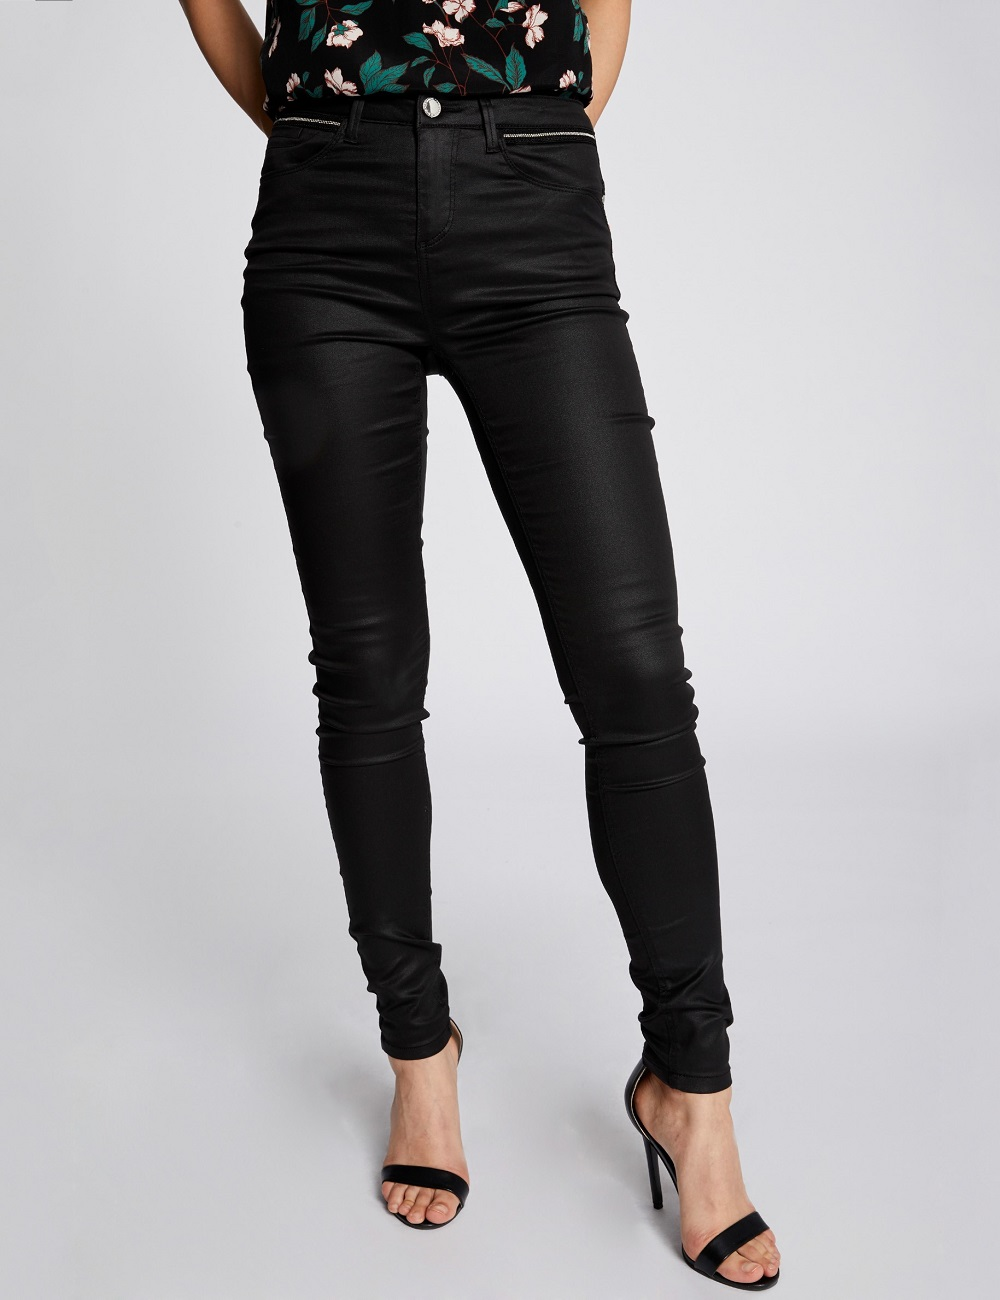 1d4c50f3a4 Pantalon slim galon fantaisie Morgan - Pantalon Morgan Morgan de Toi  Pantalon slim galon fantaisie Morgan Pantalon Morgan, achat Pantalon slim  galon ...